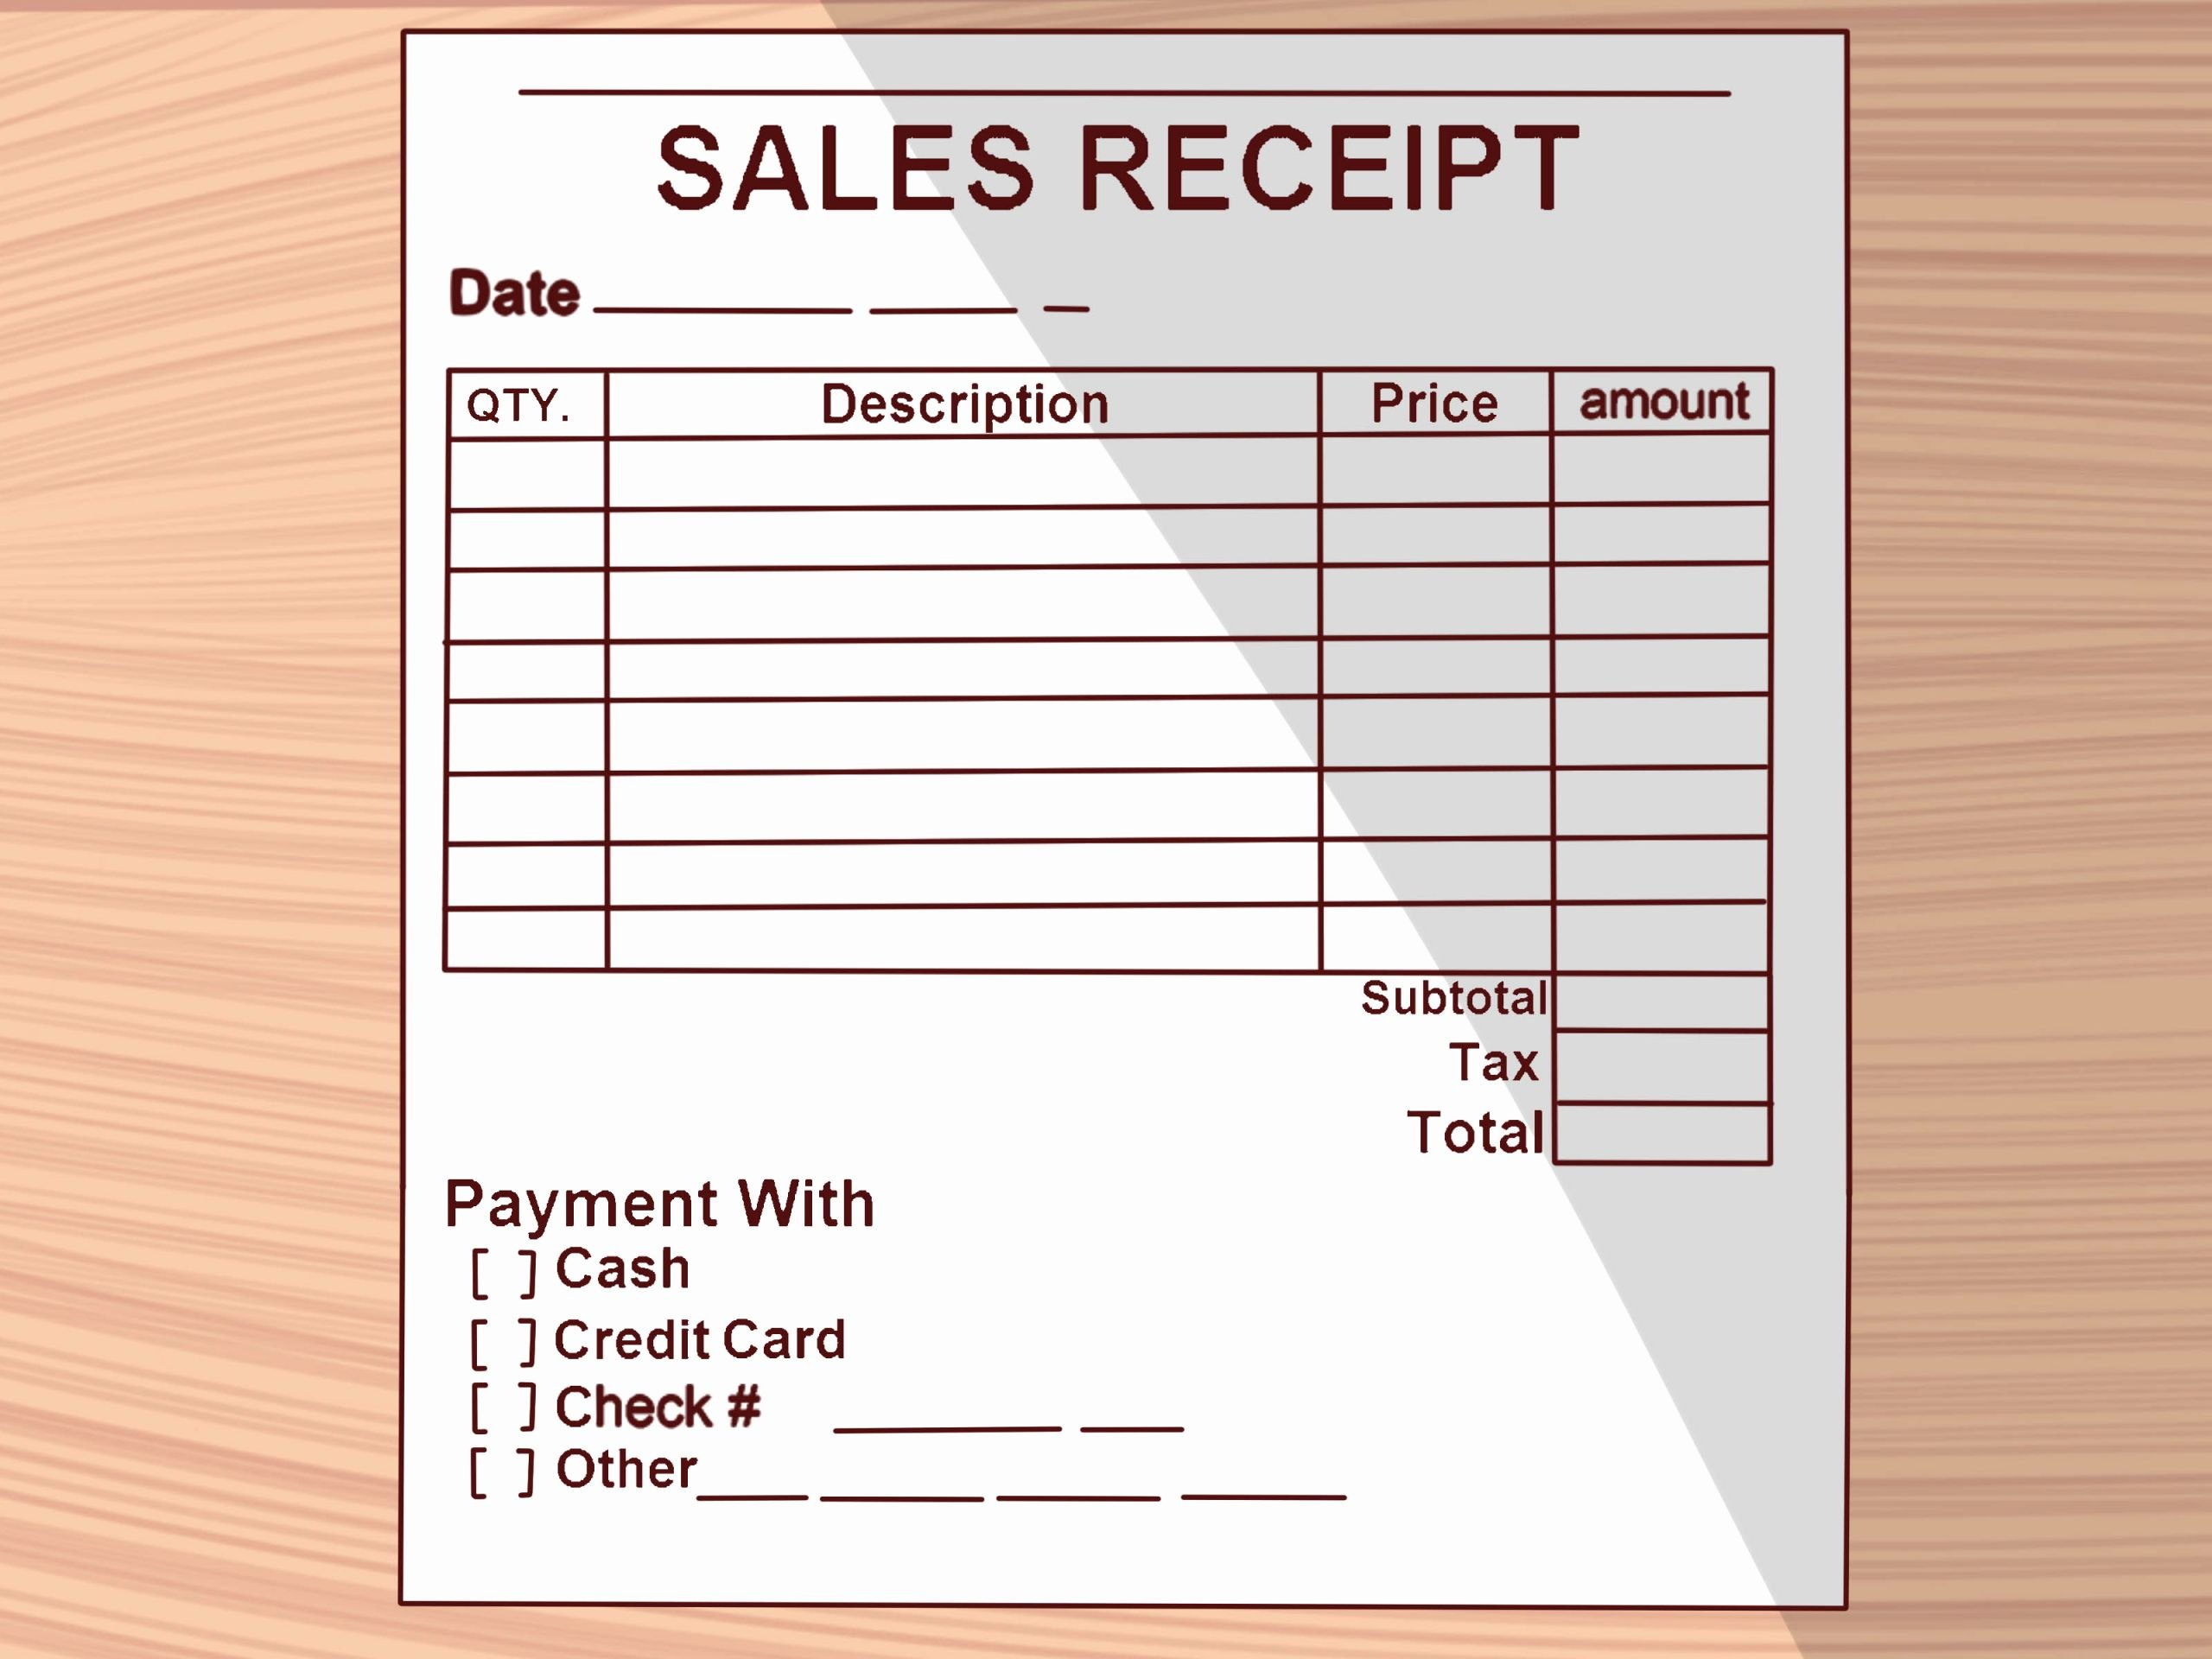 Examples Of Receipts Unique How to Write A Receipt 9 Steps with Wikihow